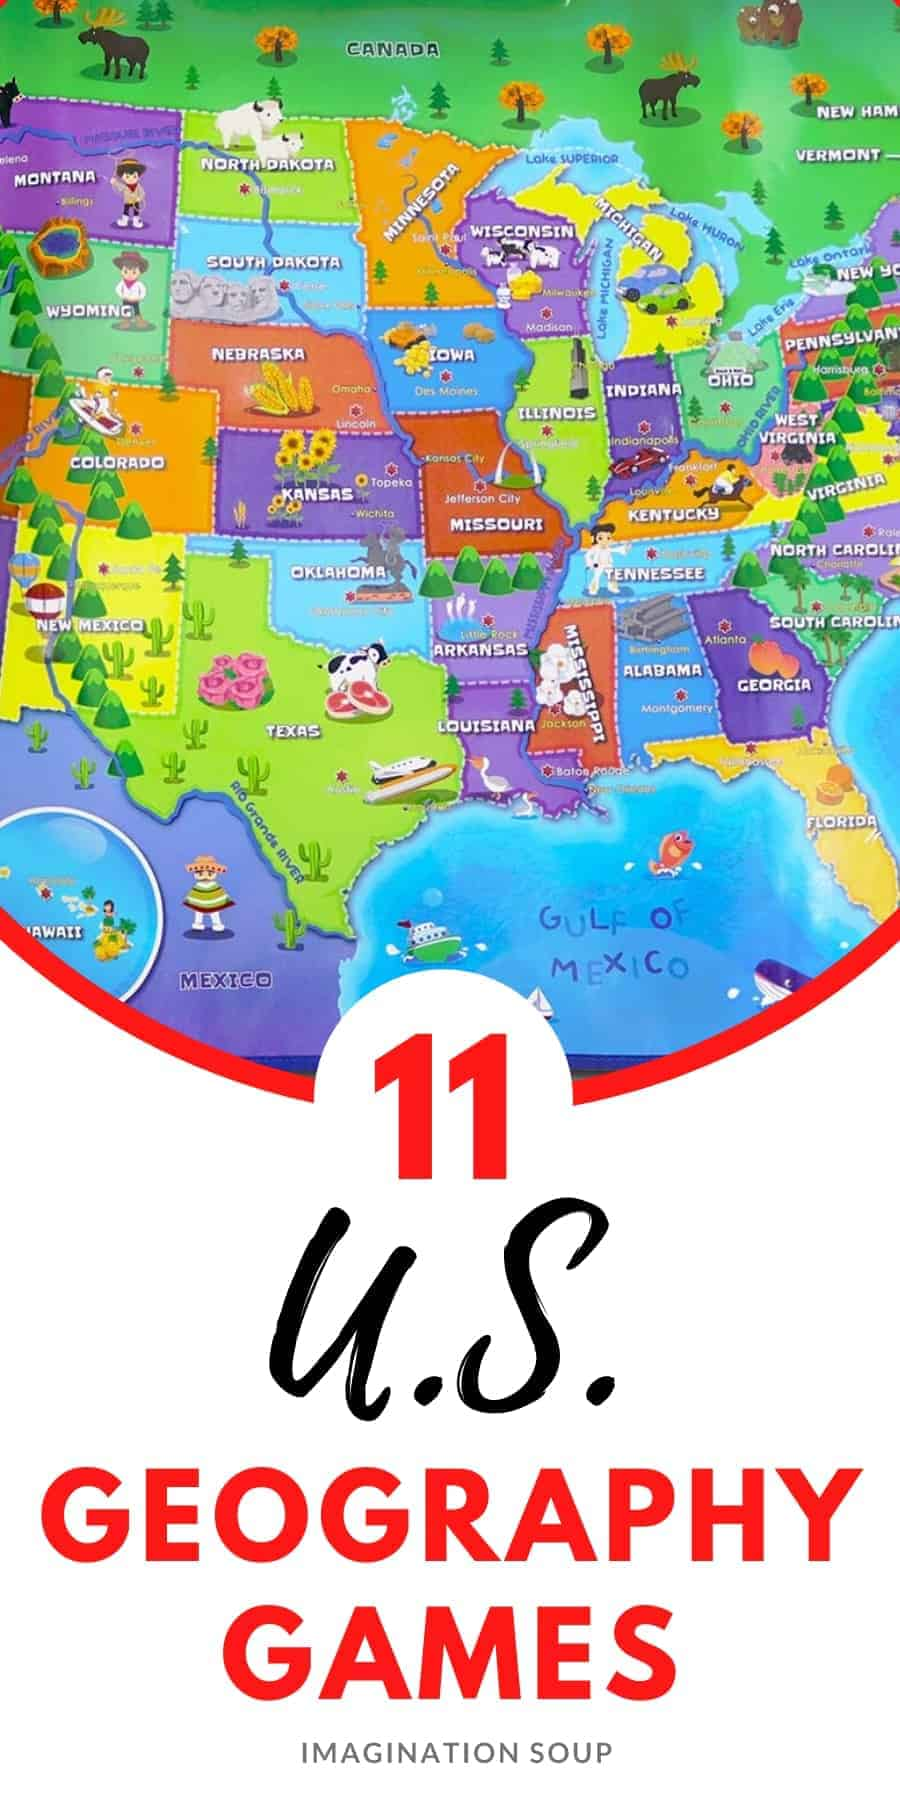 U.S. Geography Games & Puzzles